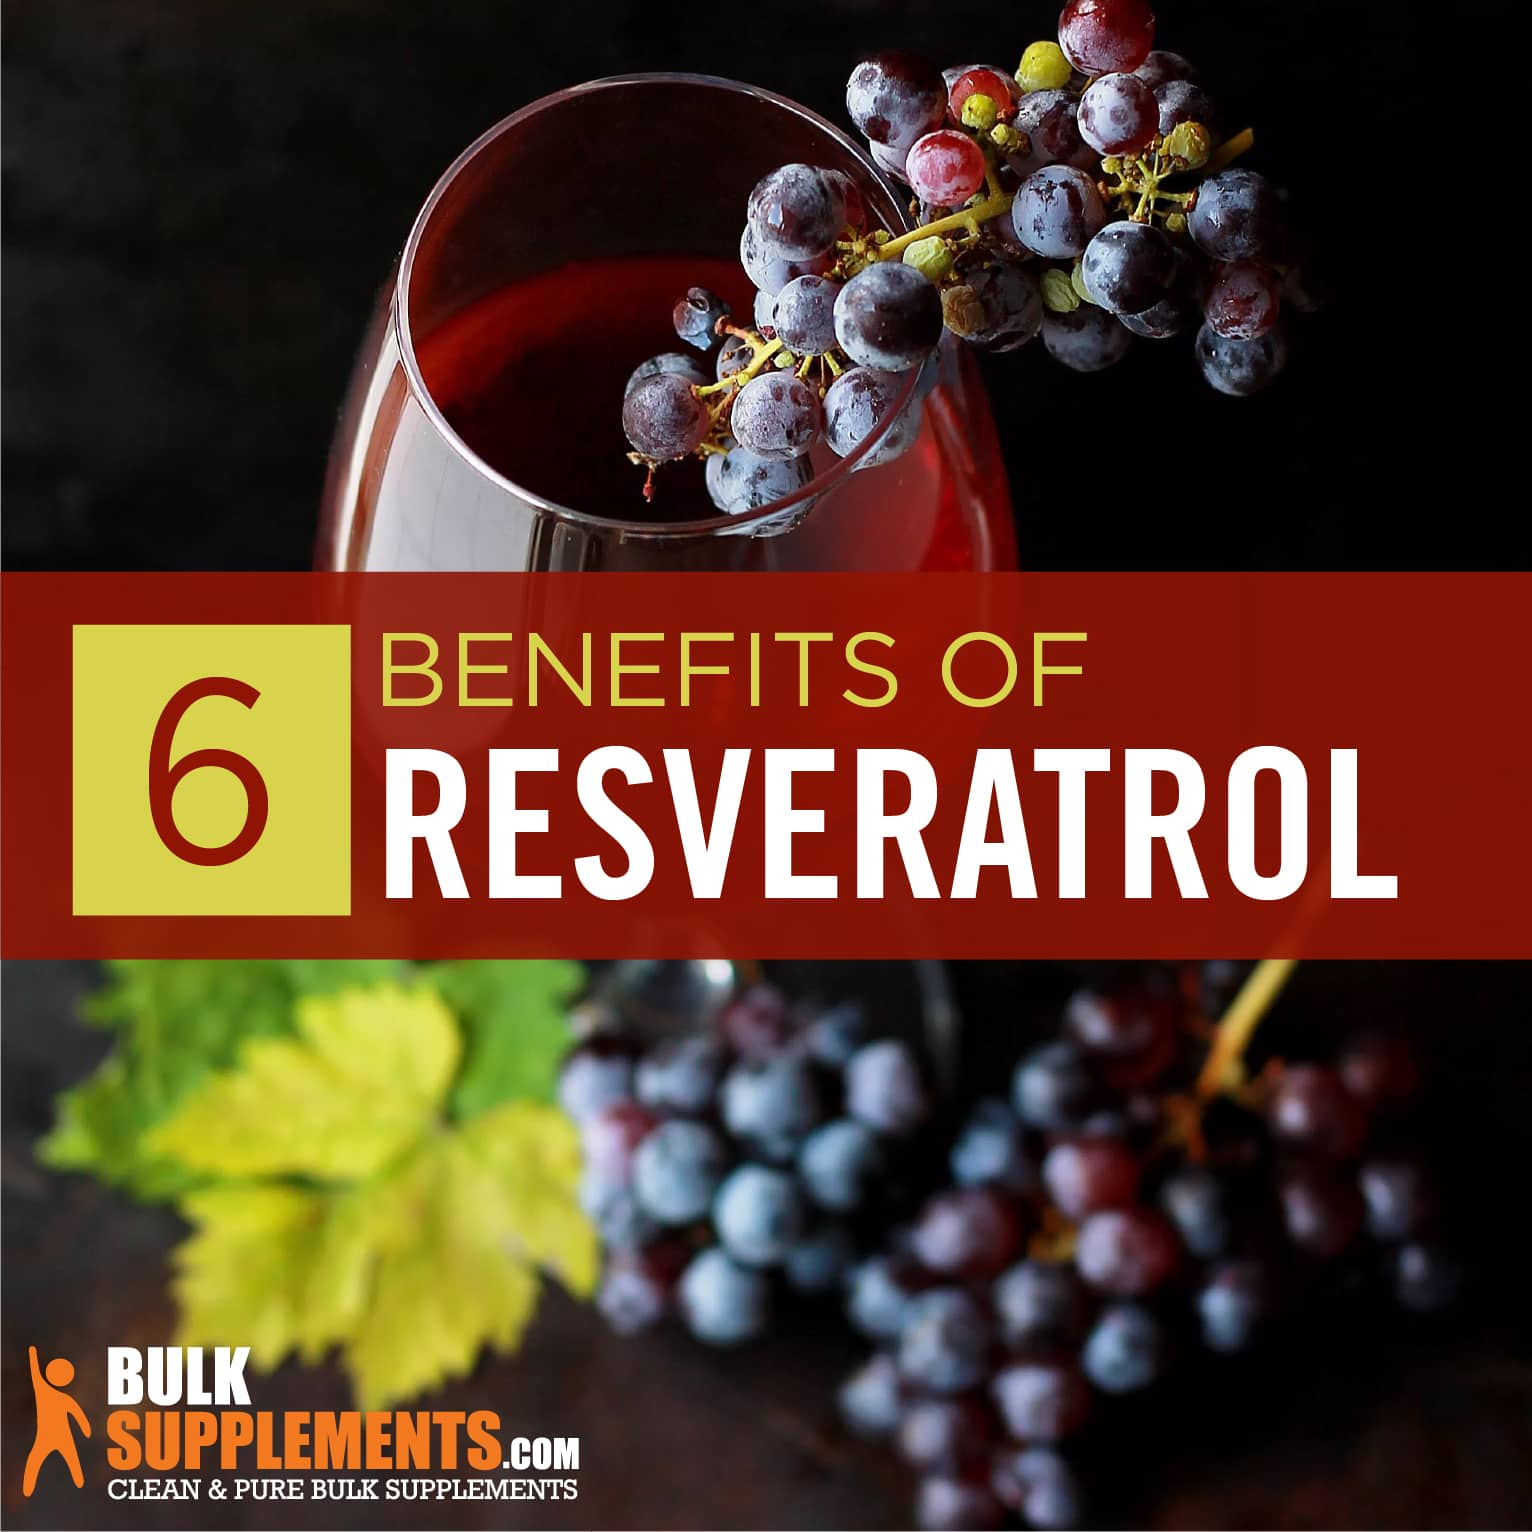 5 Ways Resveratrol Benefits The Body Why You Should Try It